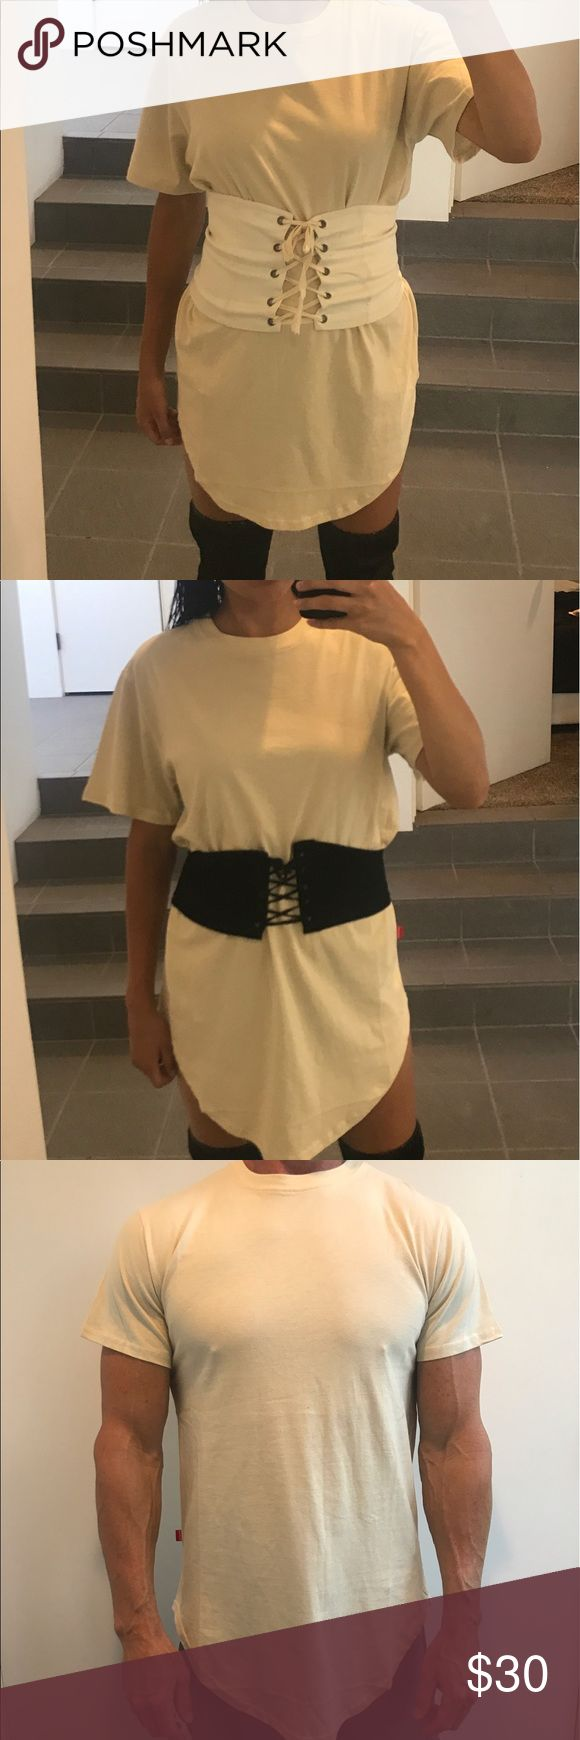 Unisex nude t-shirt Unisex size L fits men great as well as fits a women for a t-shirt dress goes great with thigh high boots and waist band Tops Tees - Short Sleeve